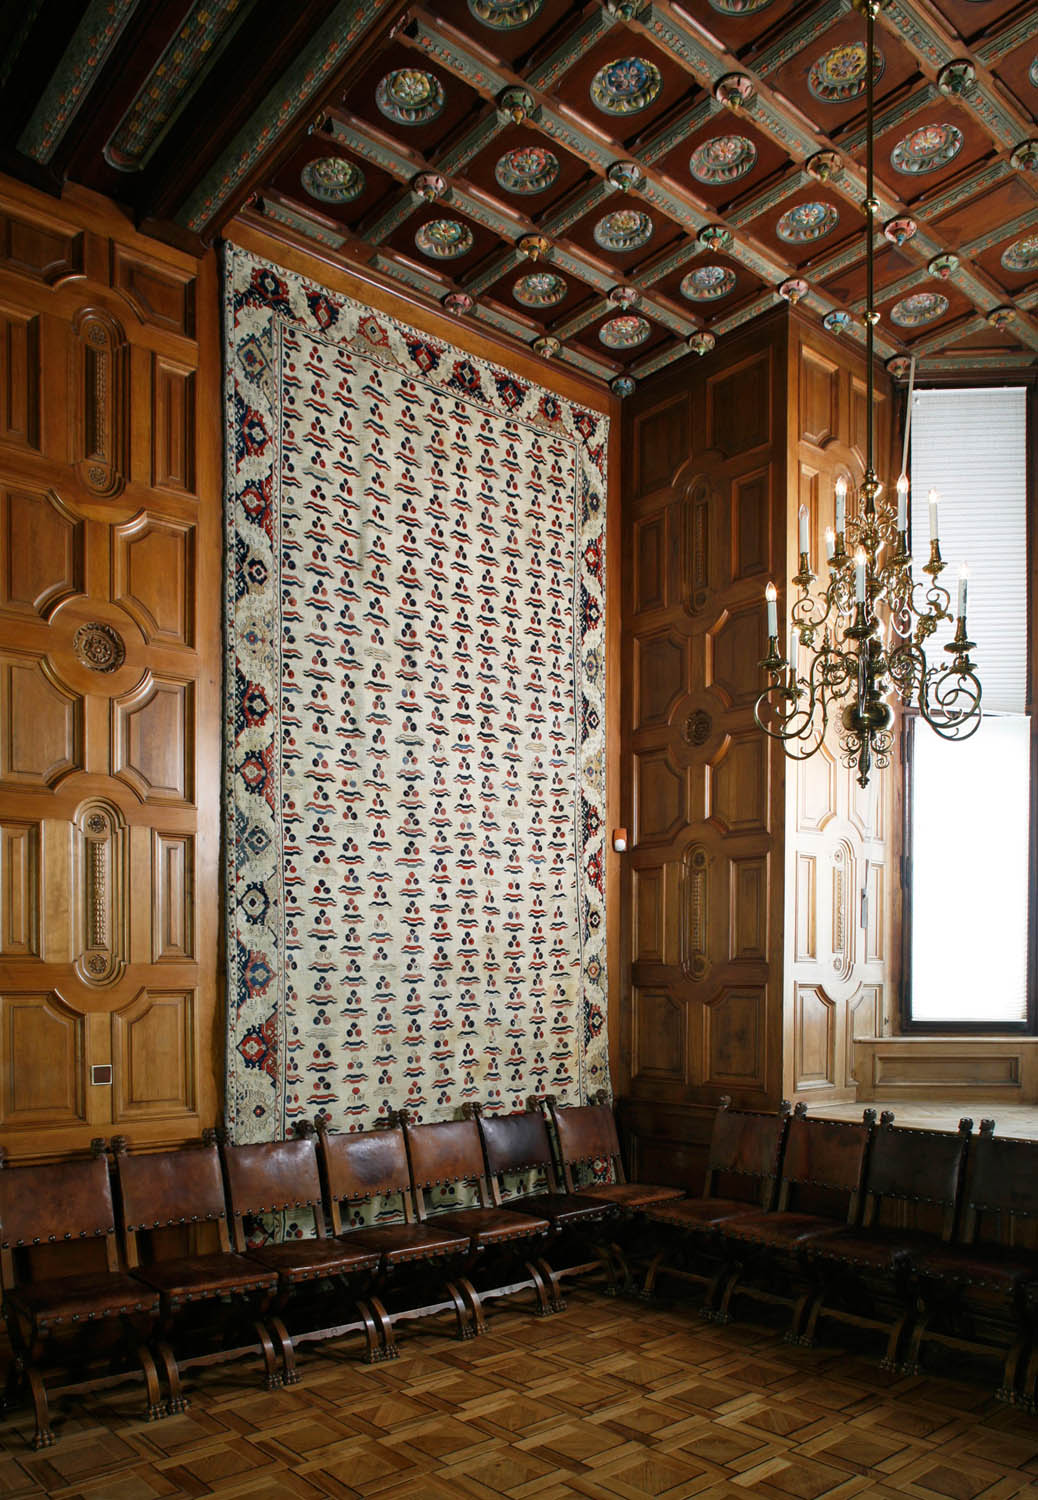 Hluboká Chateau - cintamani carpet